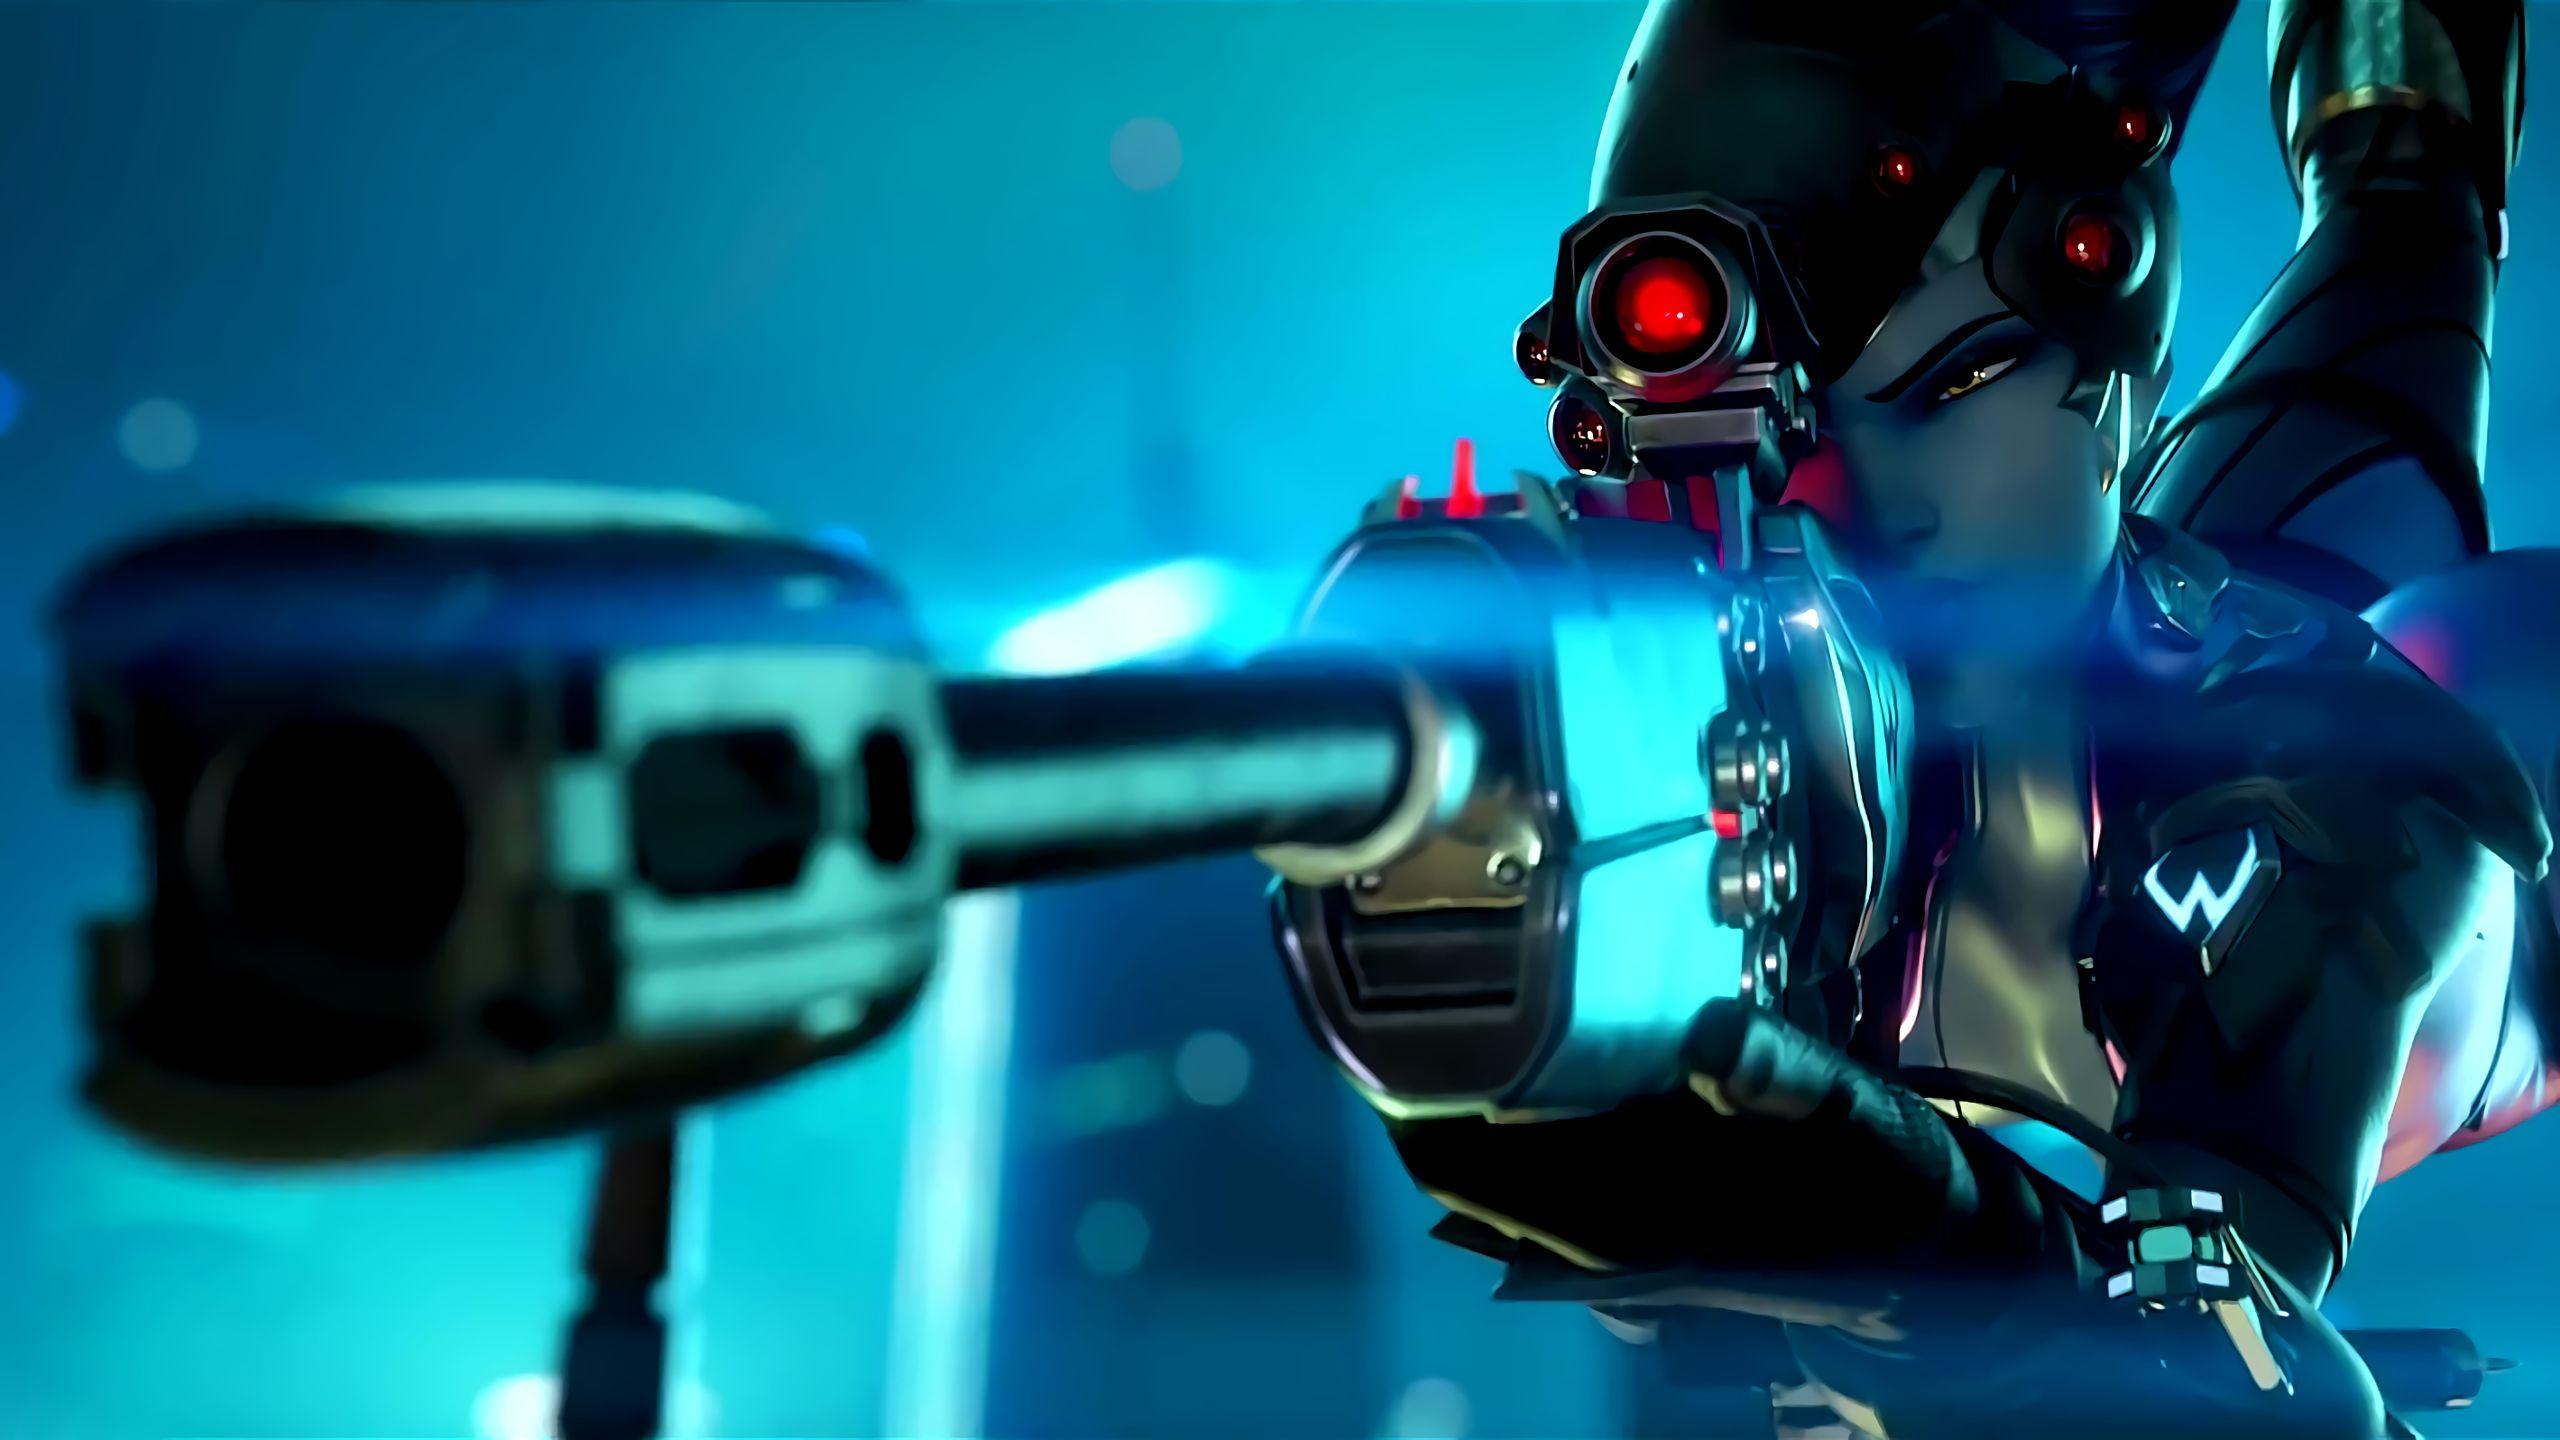 Fantastic Wallpaper High Quality Overwatch - wp2076372  Pic_549399.jpg